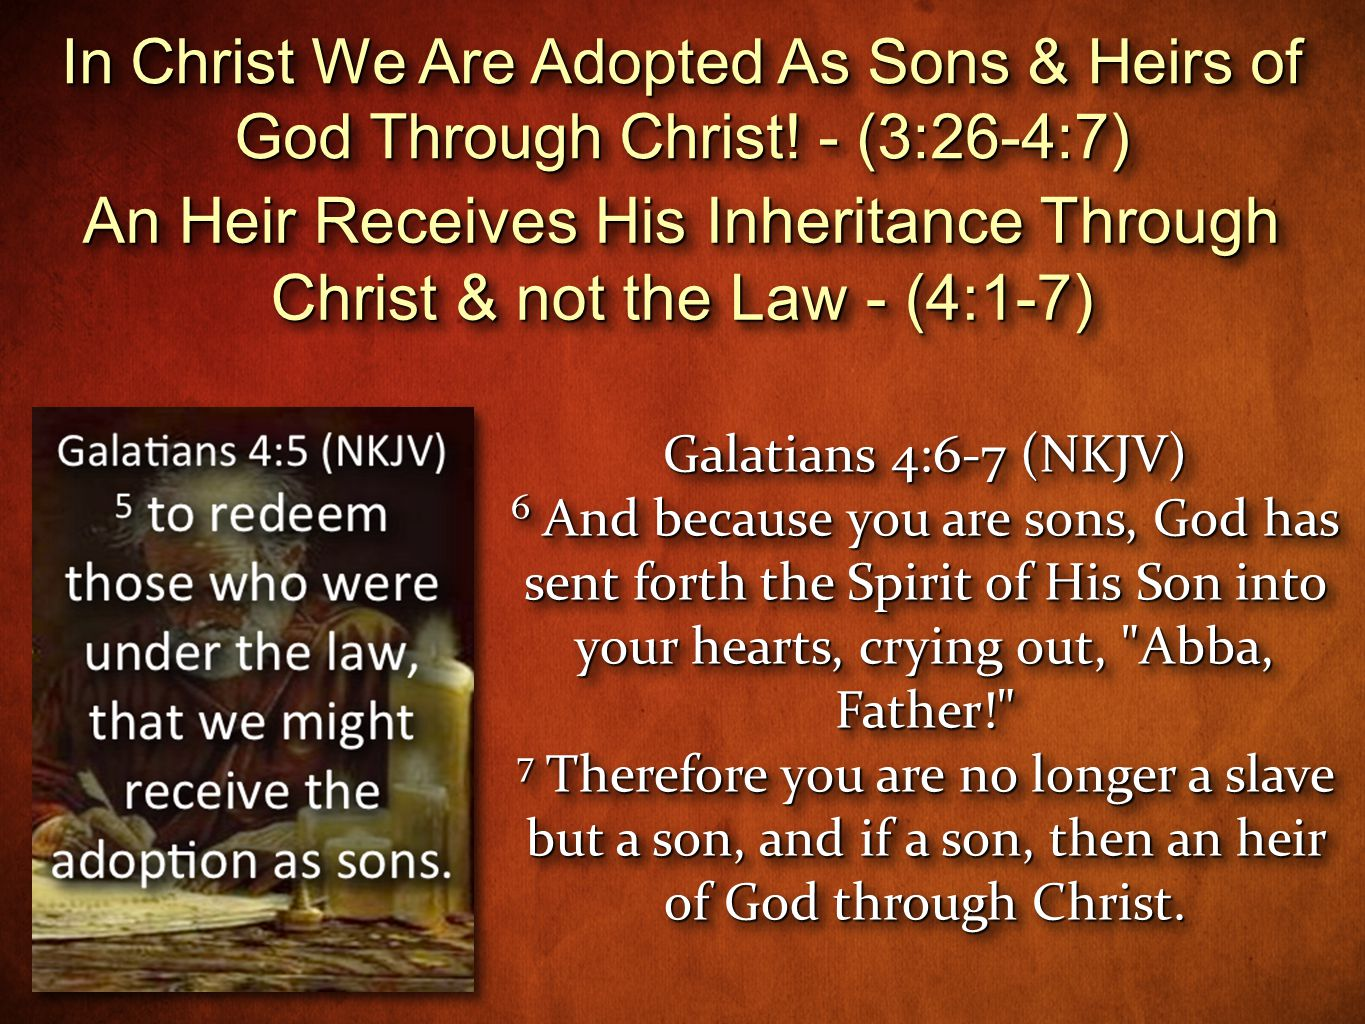 In Christ We Are Adopted As Sons & Heirs of God Through Christ.